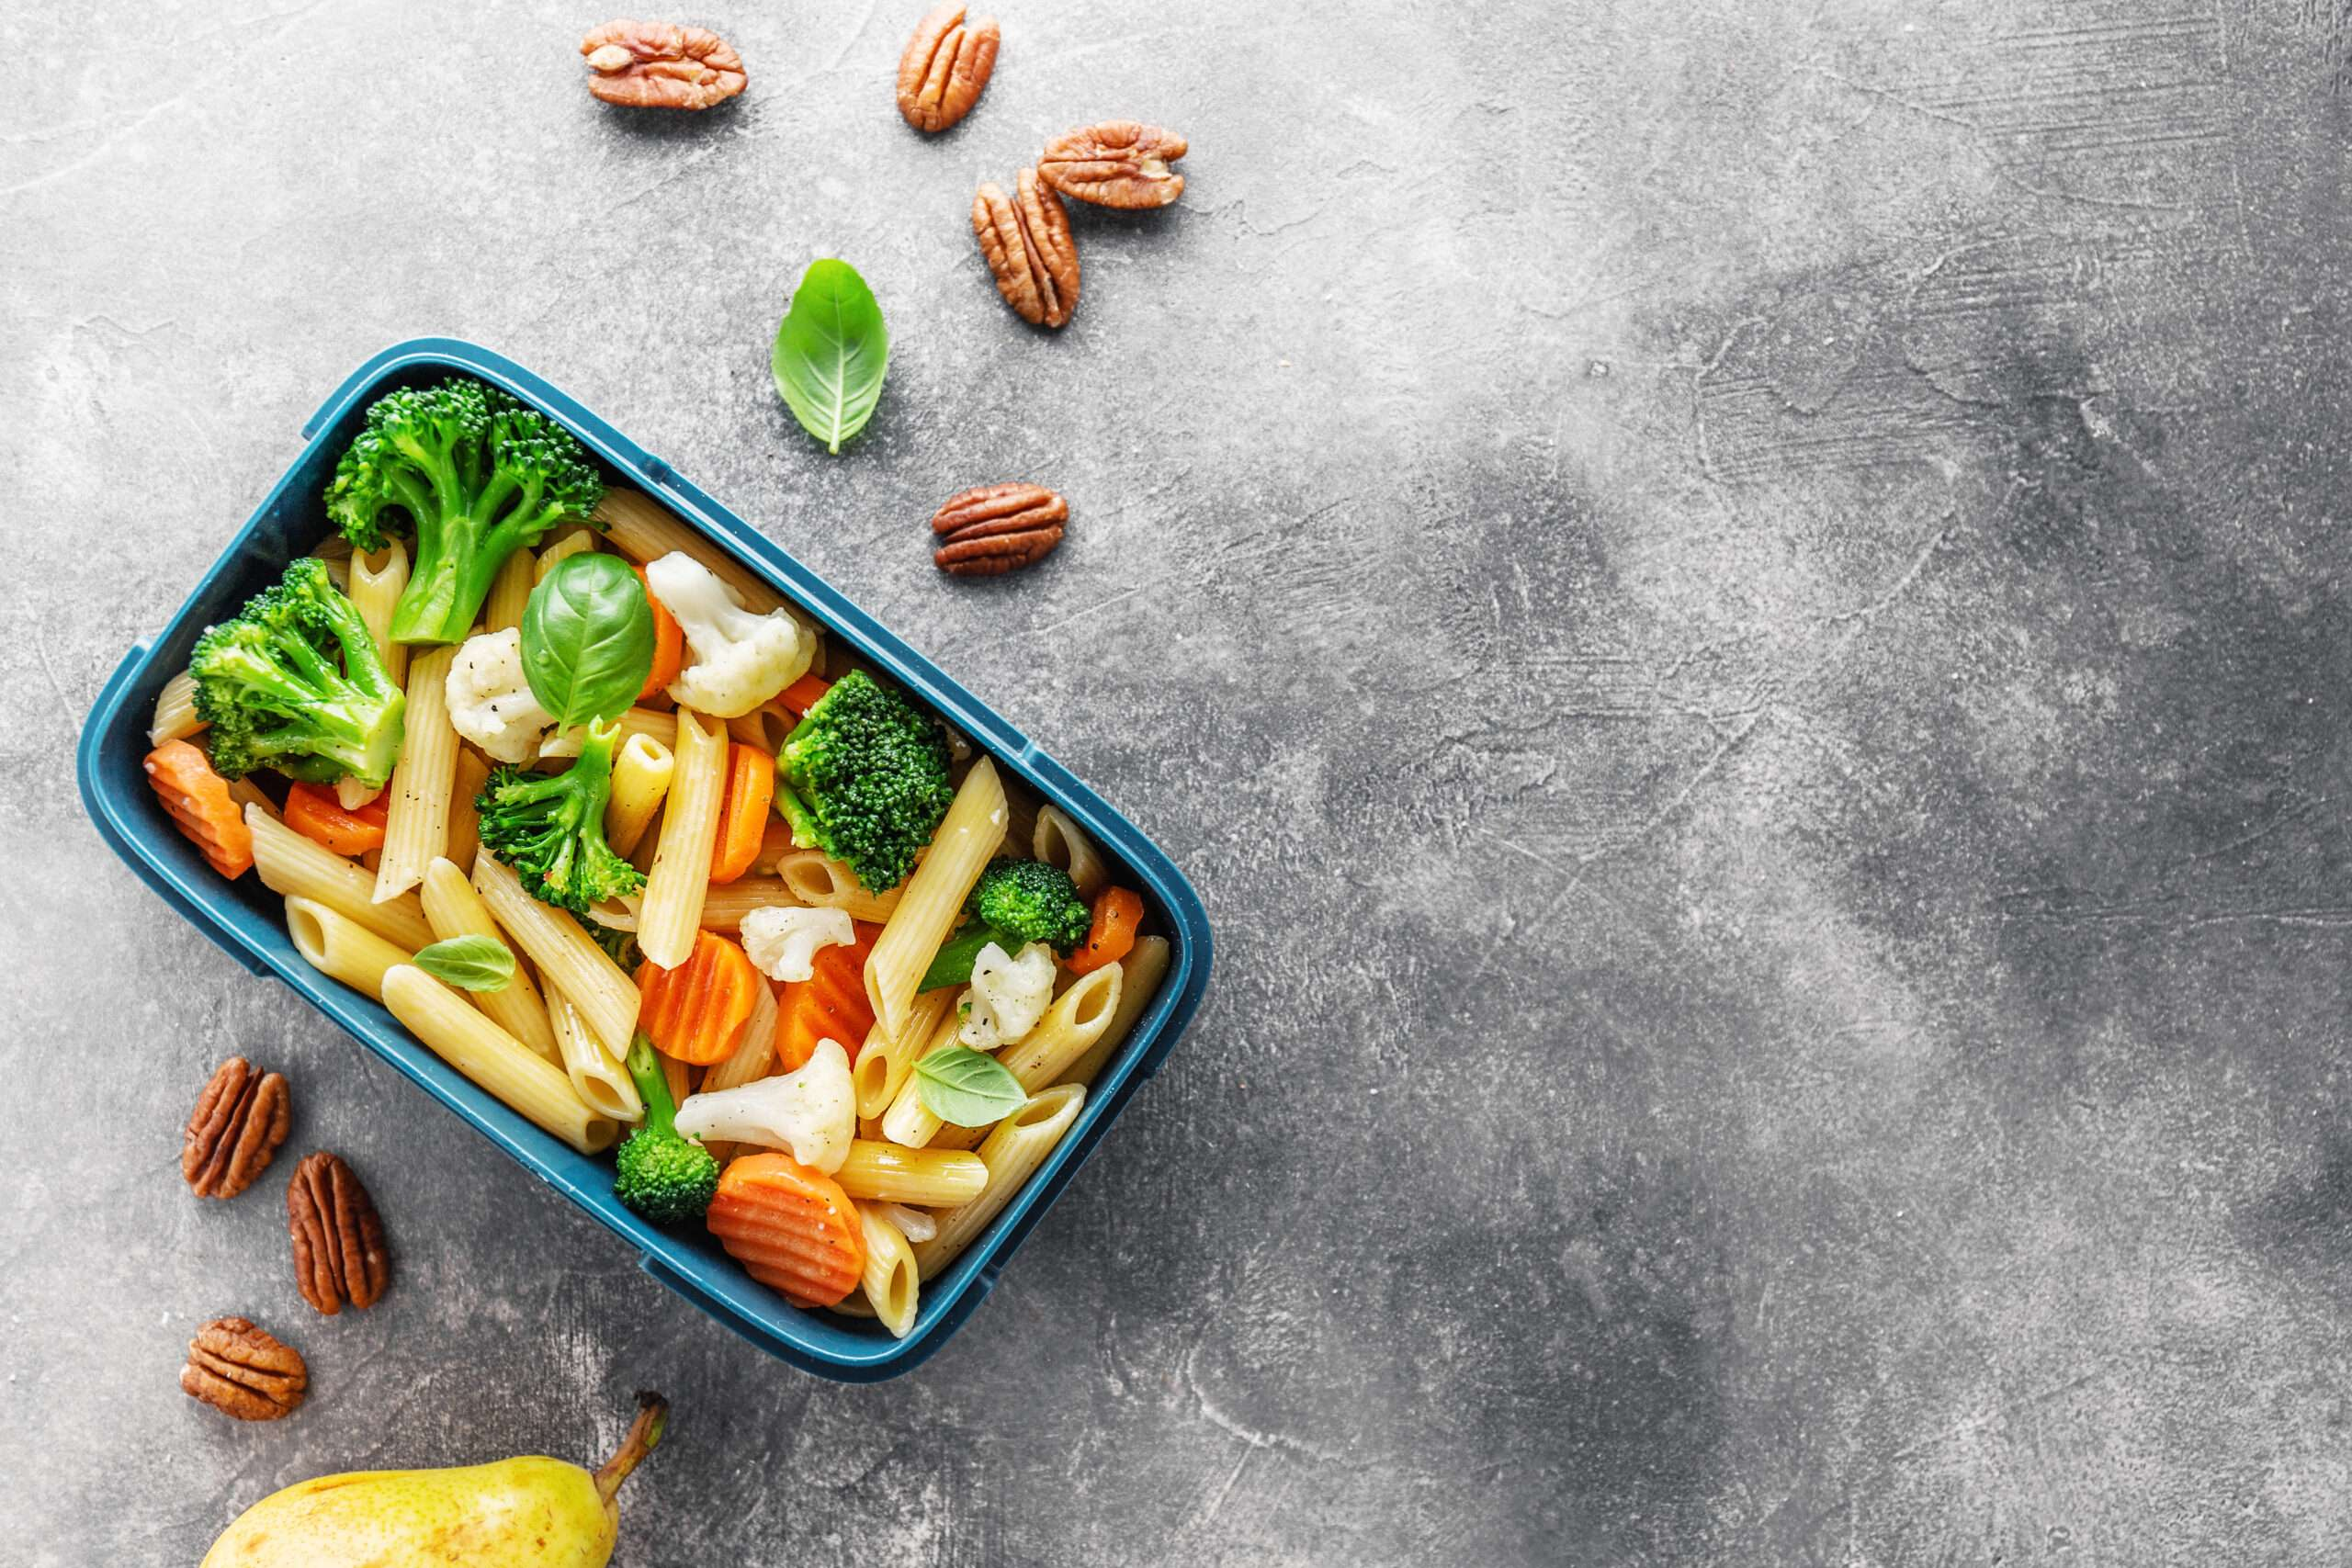 child's Healthy lunch with pasta, vegetables and fruit